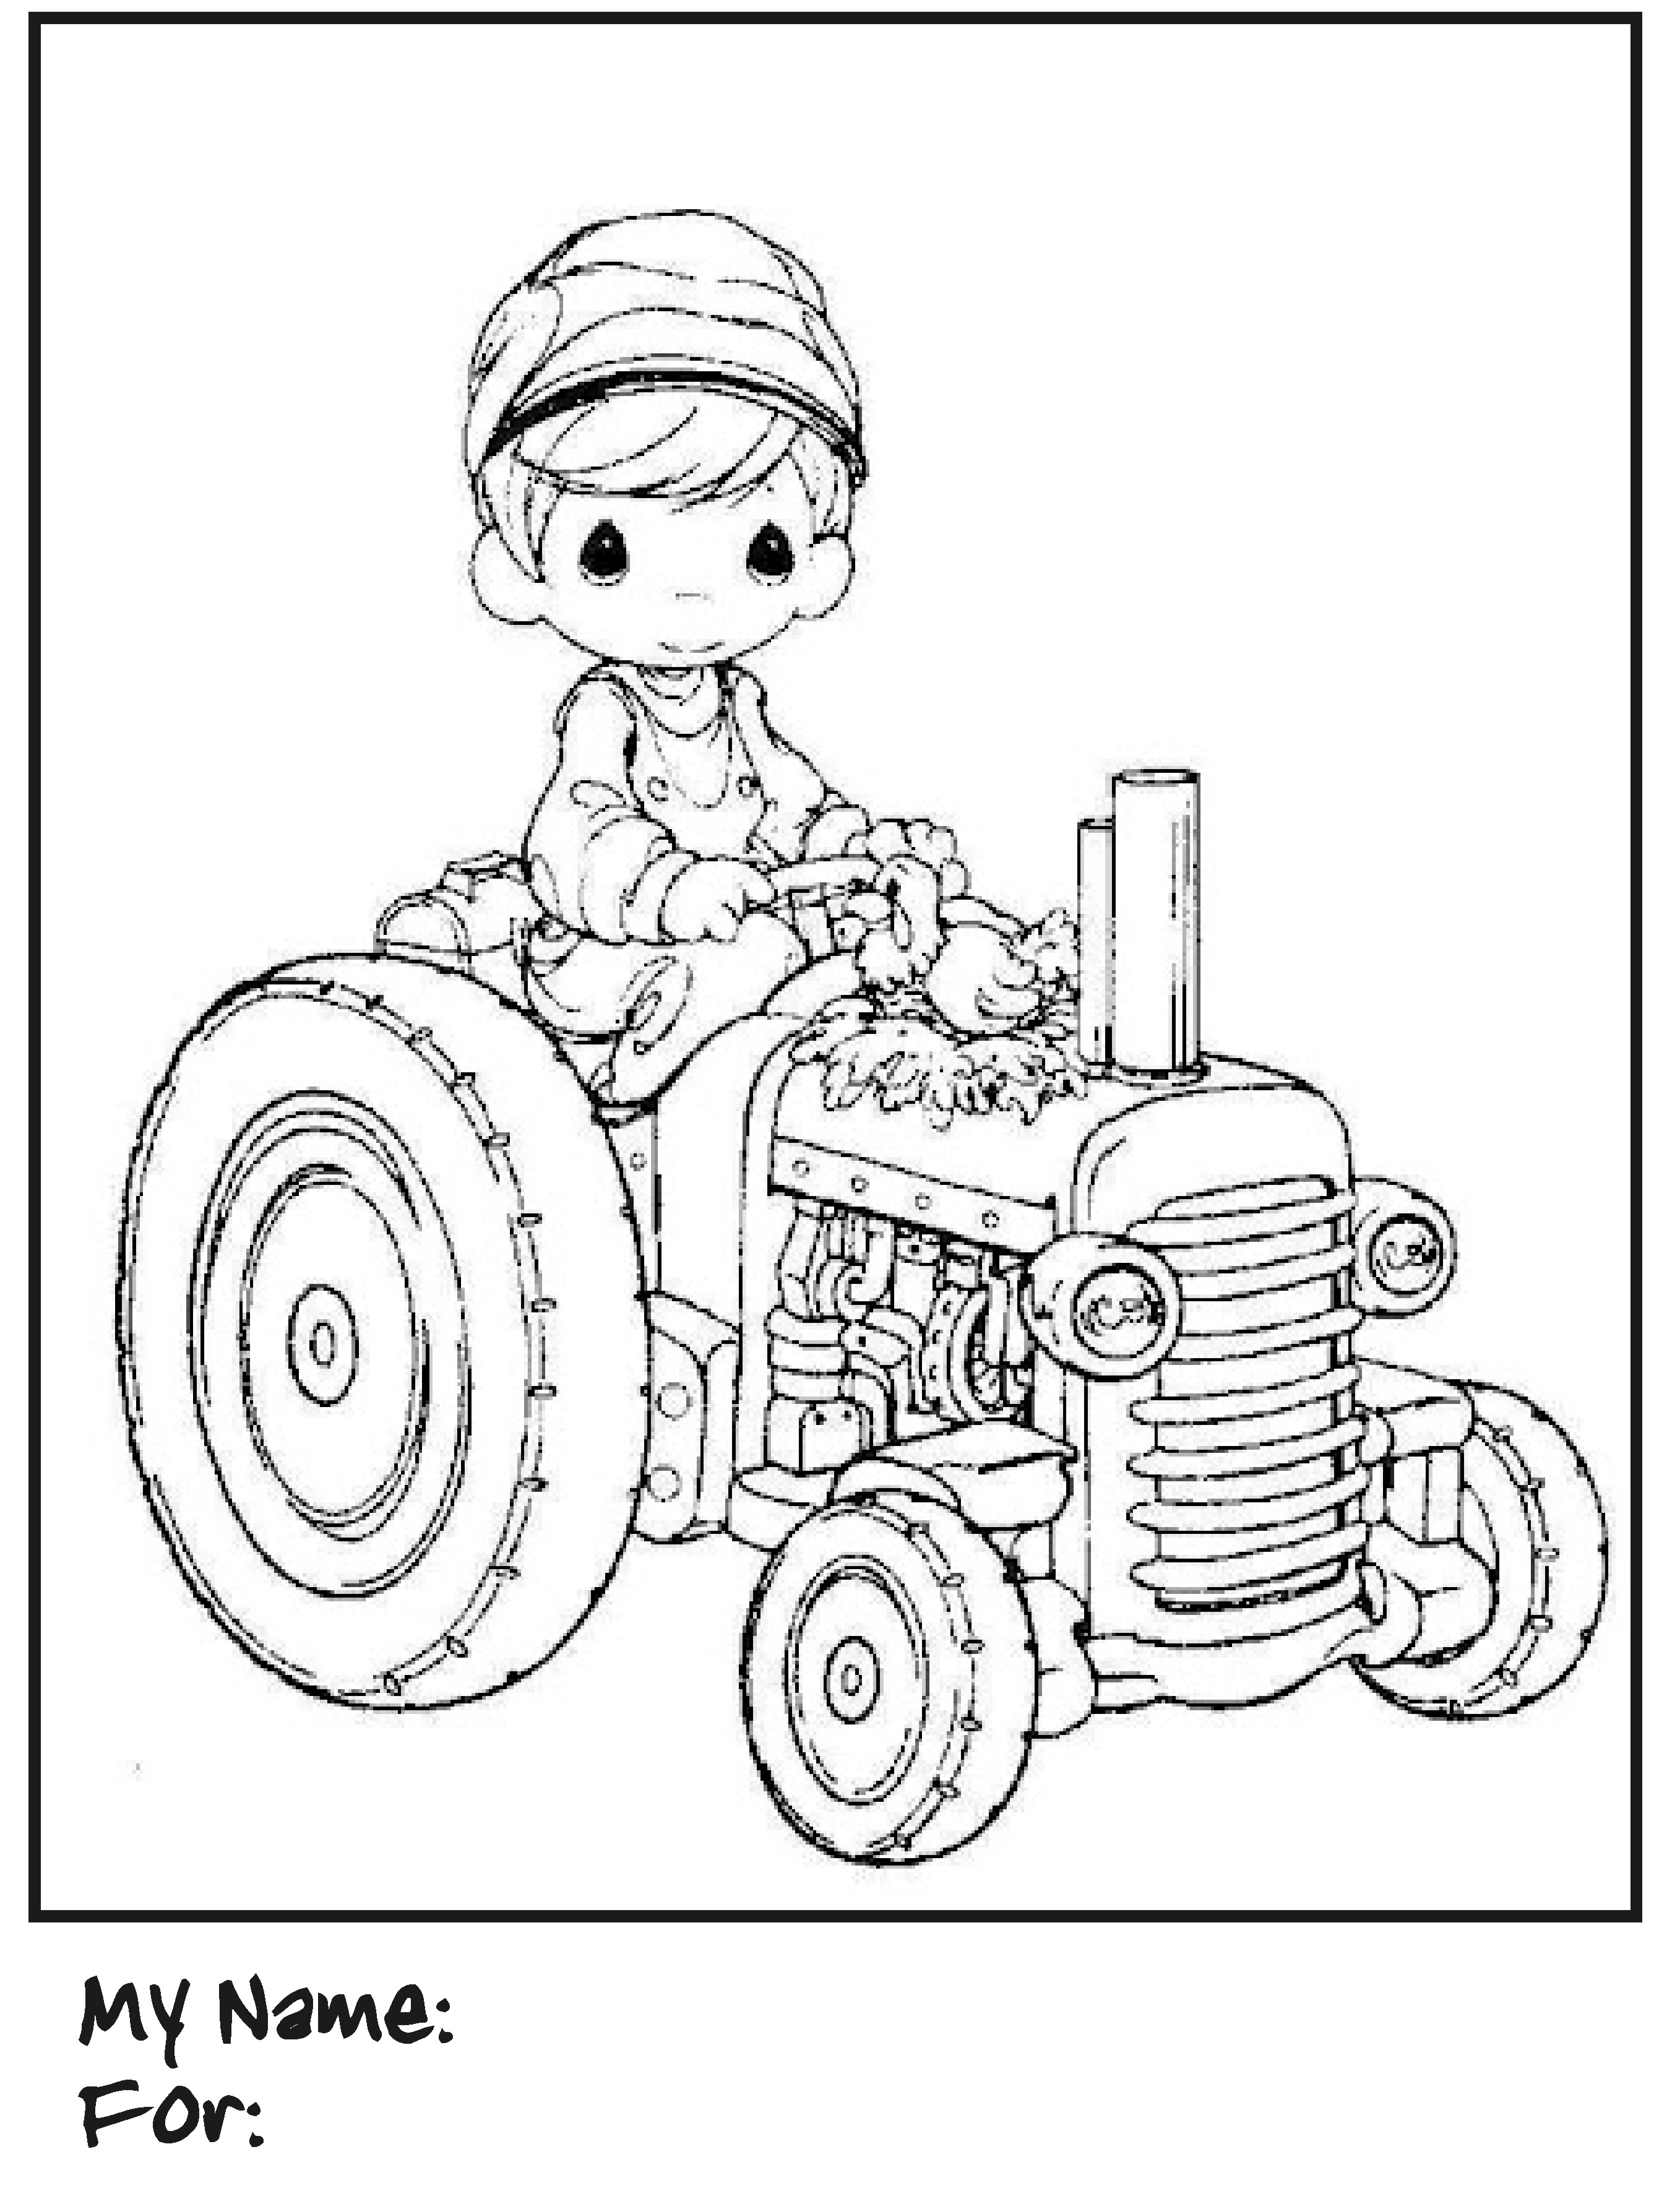 Precious Moments Boy Coloring Pages At Getdrawings Com Free For